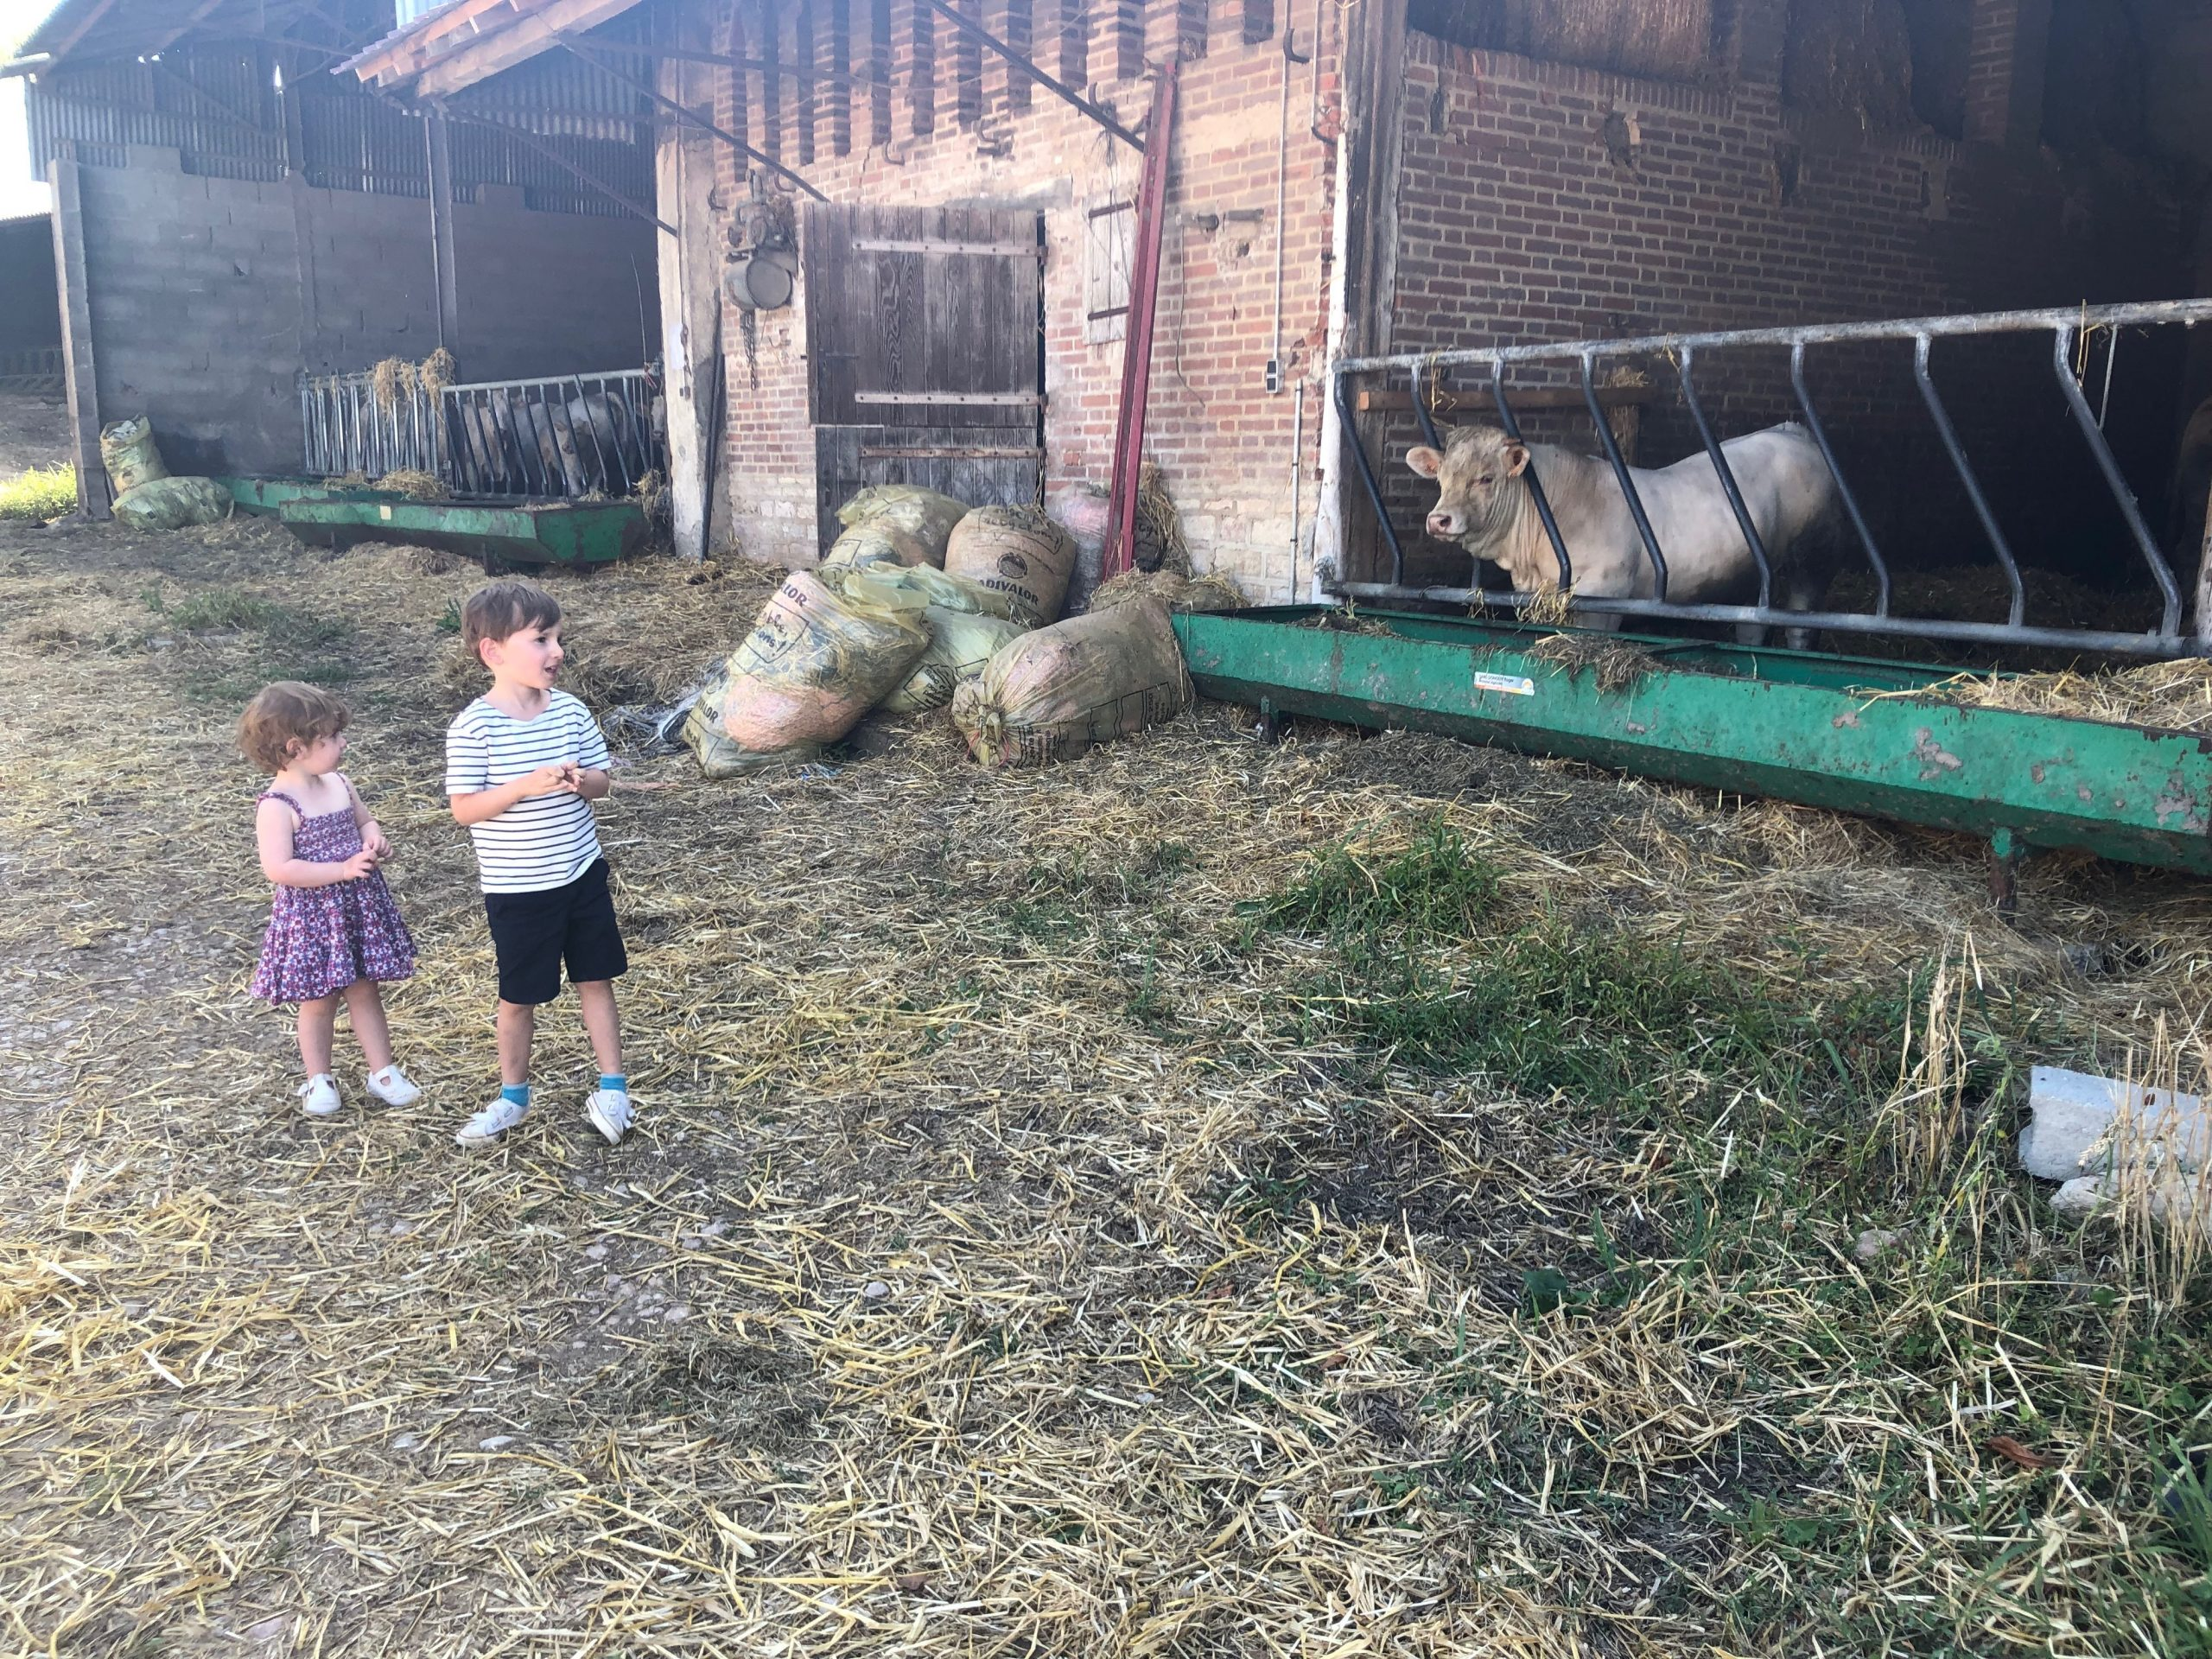 family farm with animals and children